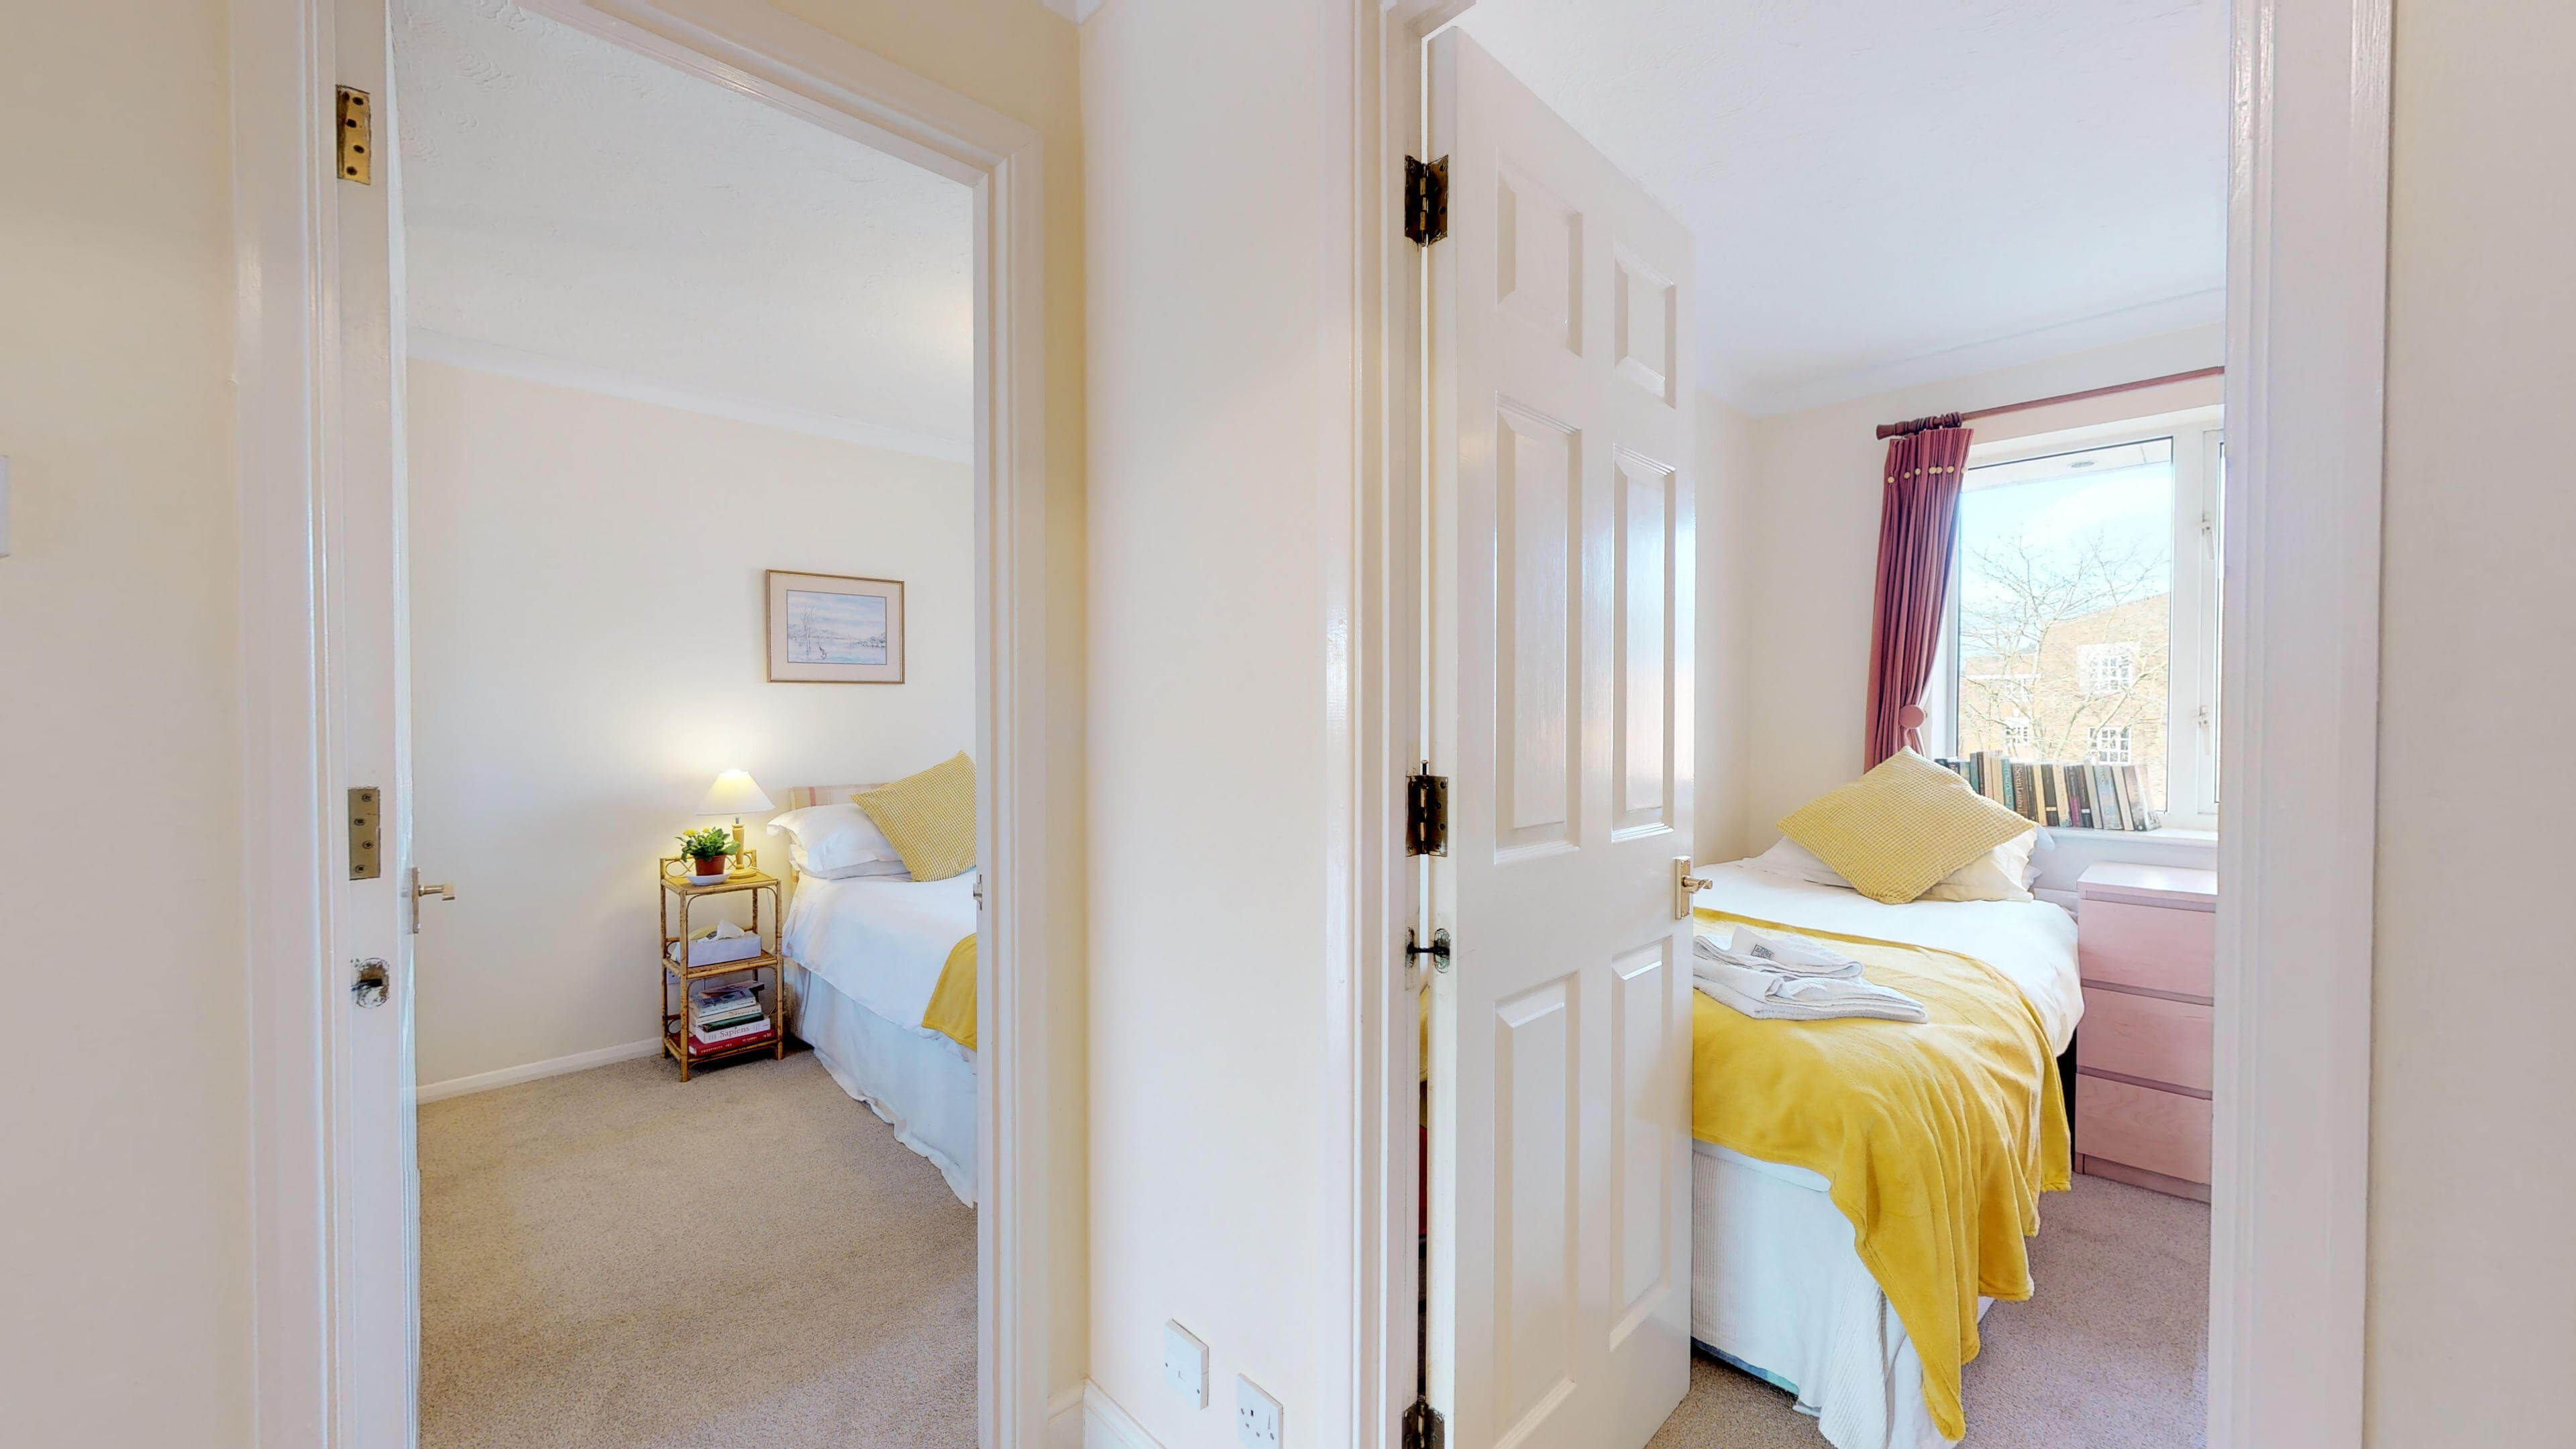 Millbank Oxford City Centre Short Stay Apartment Sleeps 4 Inside